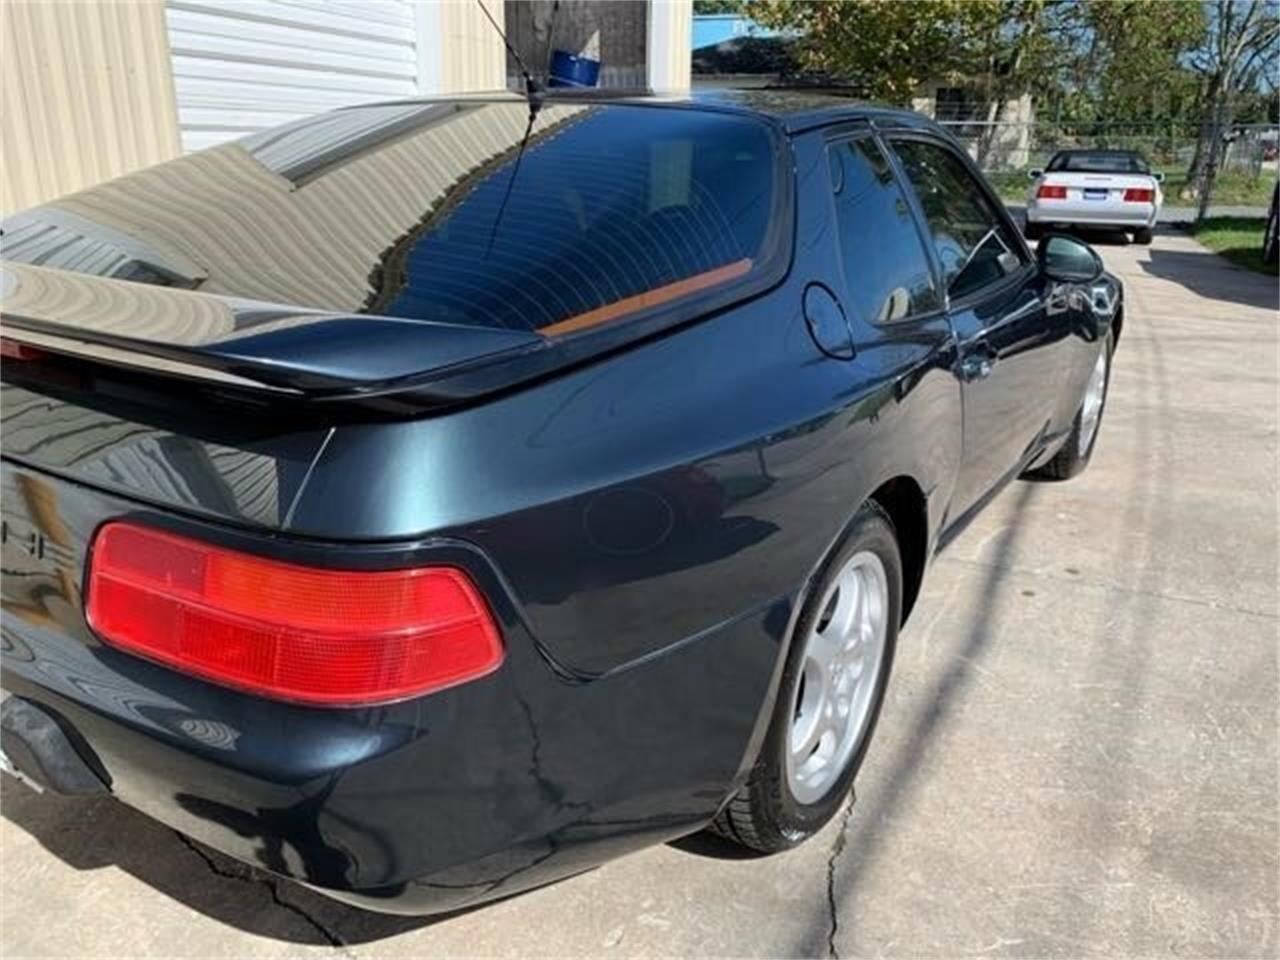 1995 Porsche 968 for sale in Holly Hill, FL – photo 13